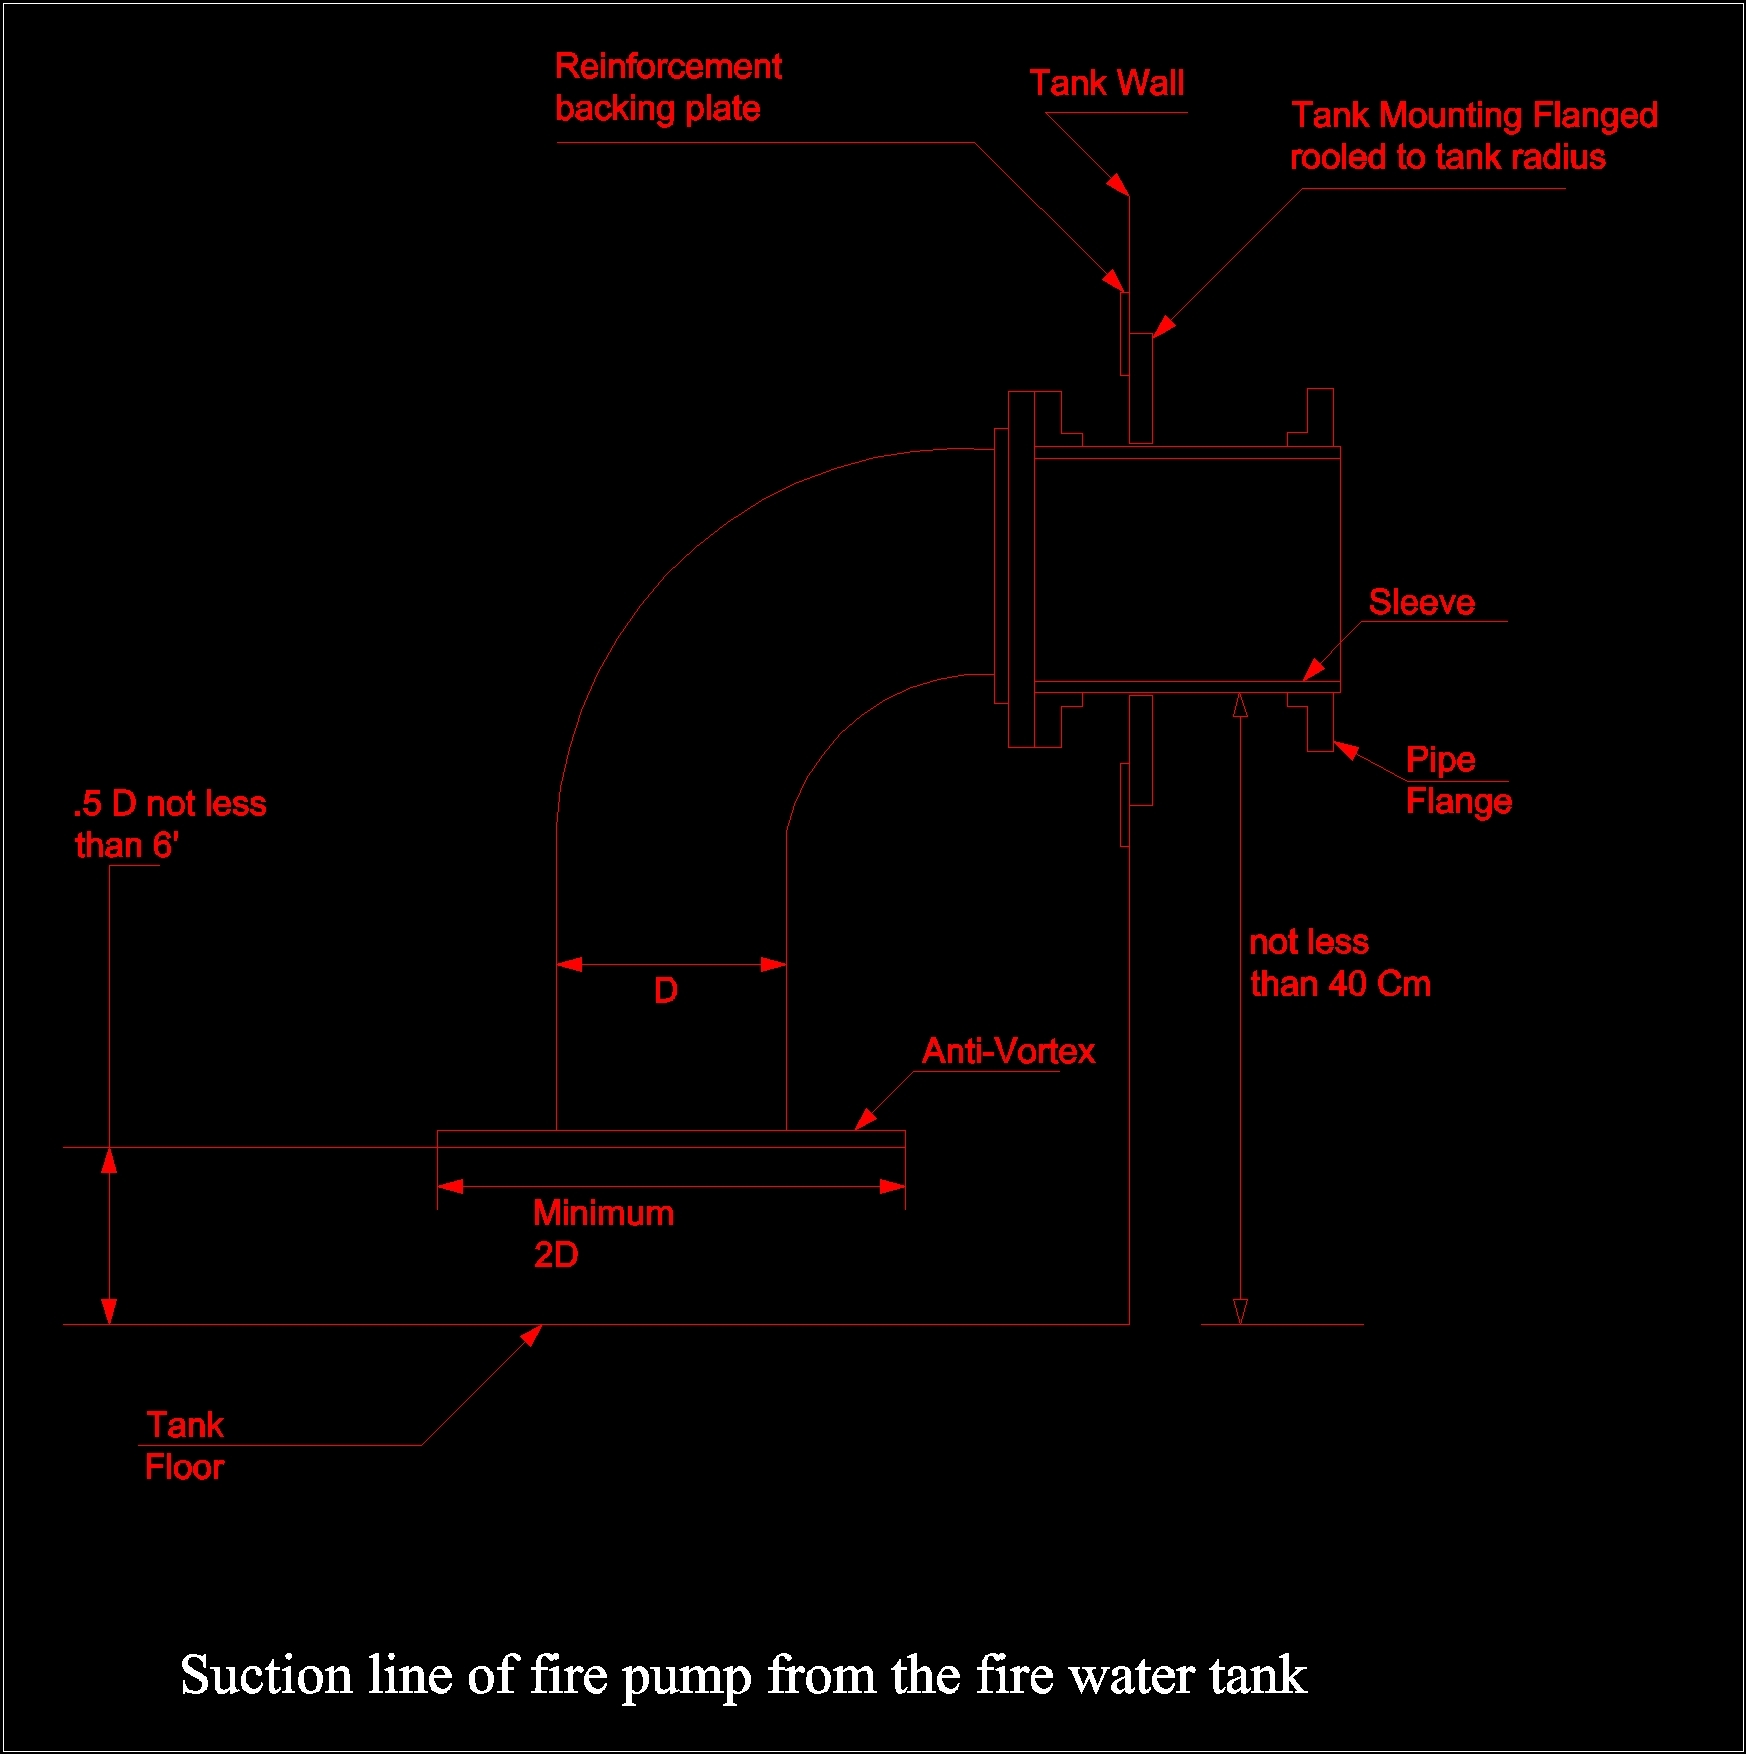 Vortex Plate On Suction Pump Line From Tank Dwg Block For Autocad Designs Cad